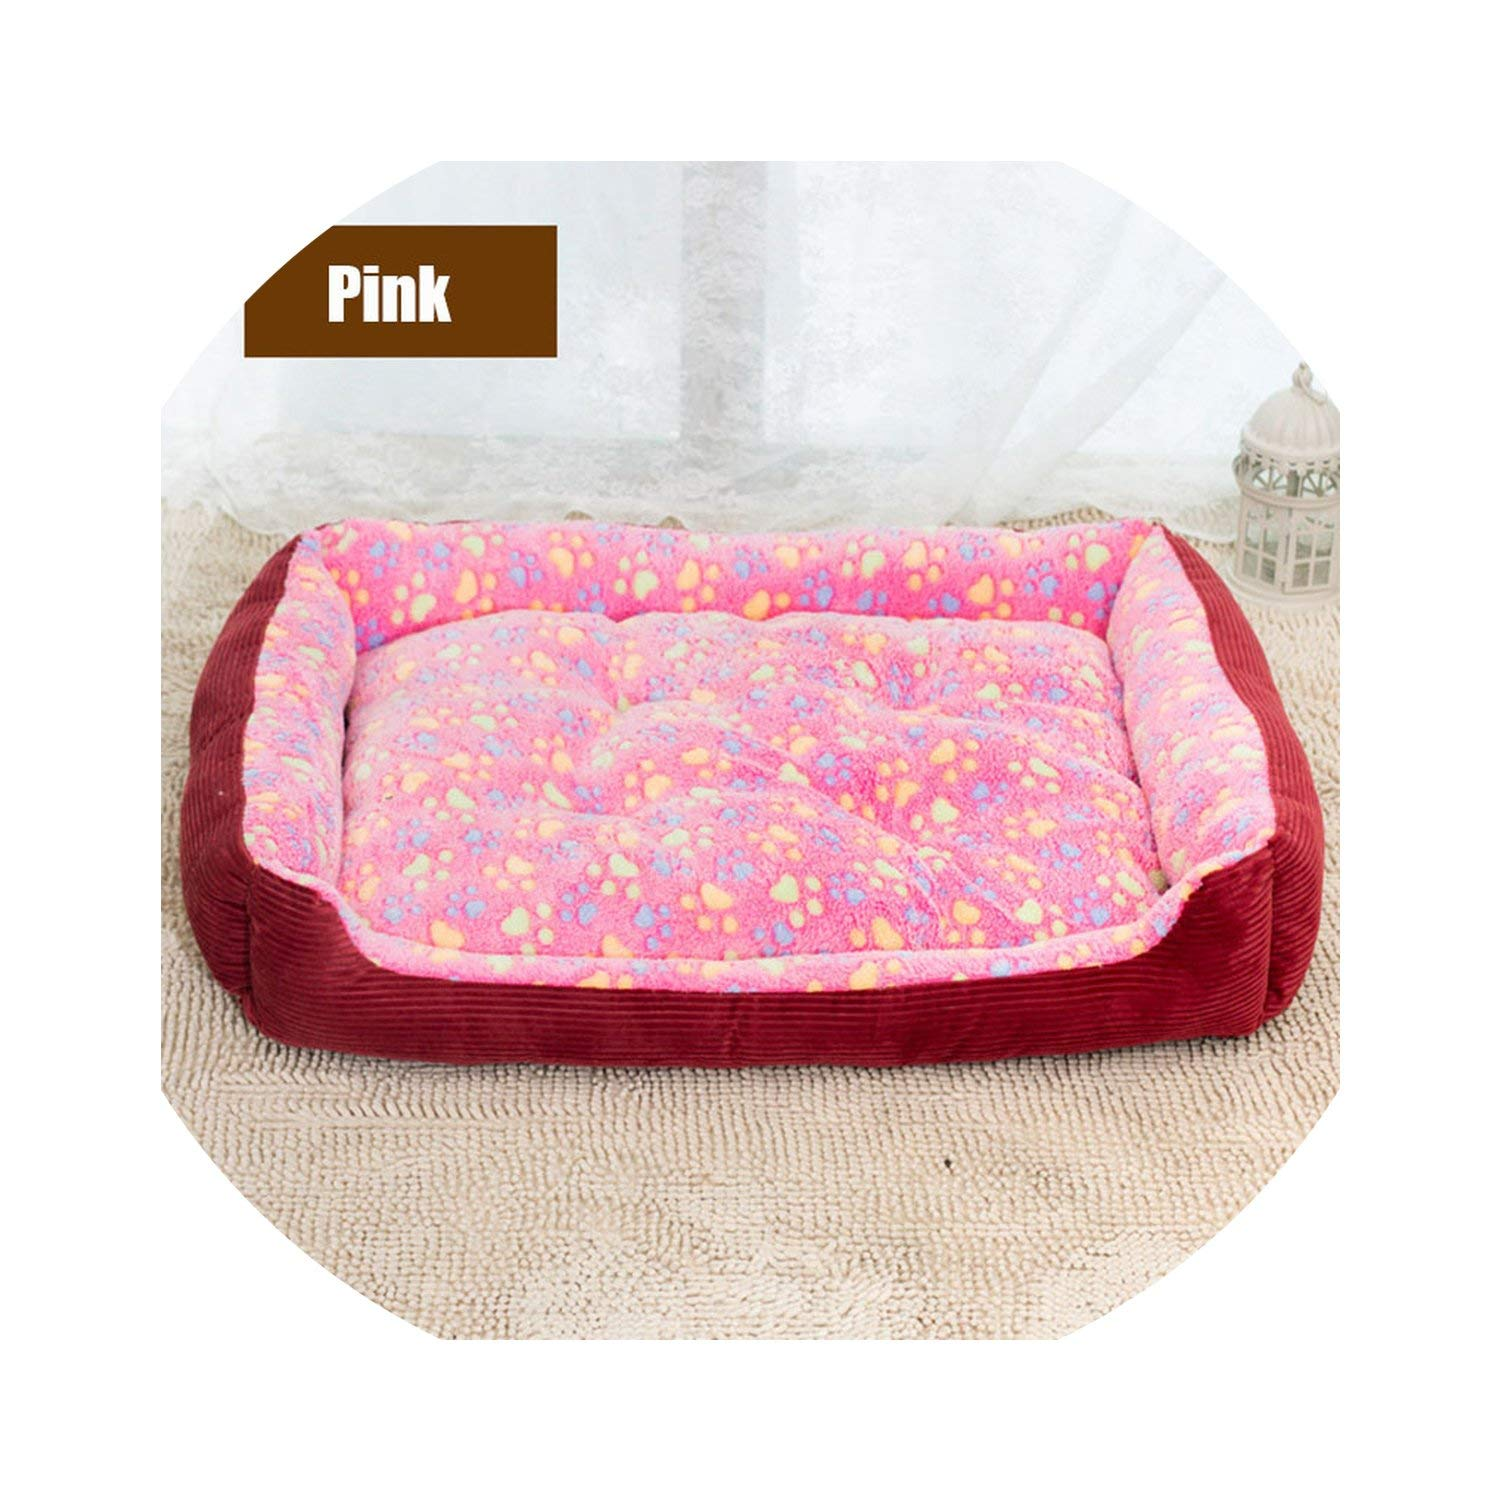 pink red 88x68x13cm pink red 88x68x13cm longing-summer Large Breed Dog Bed Sofa Mat House 3 Size Cot Pet Bed House for large dogs Big Blanket Cushion Basket Supplies,pink red,88x68x13cm